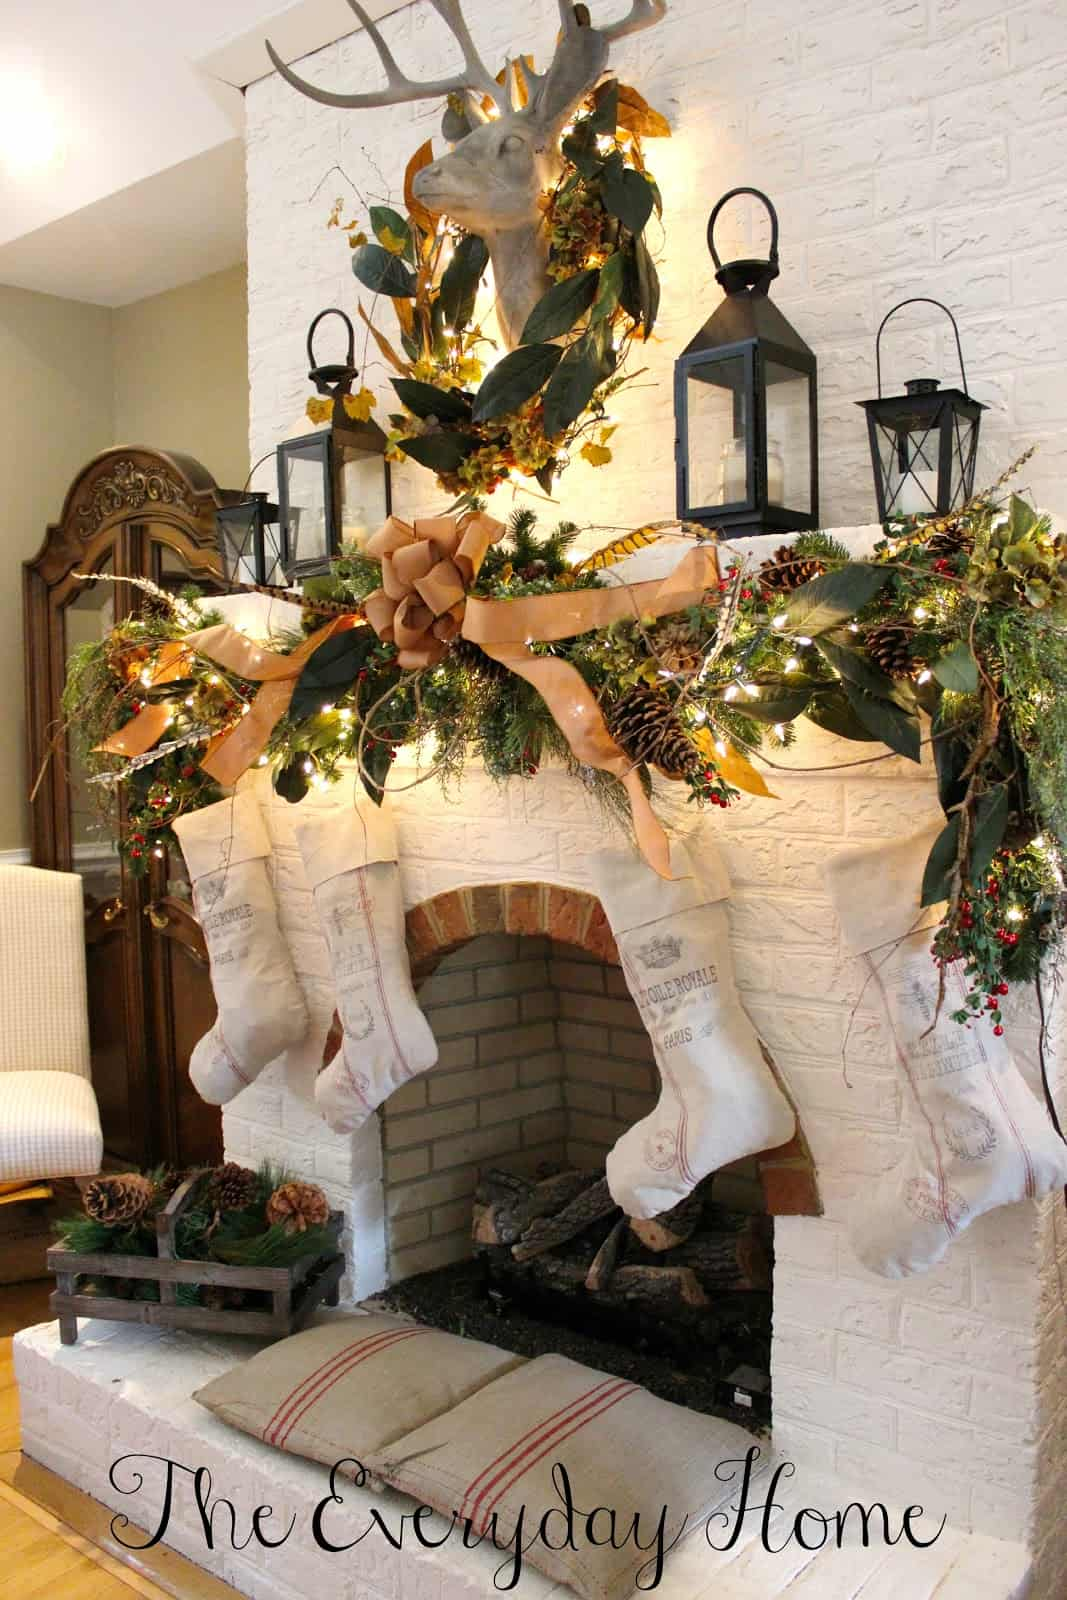 Design Christmas Mantel Ideas 50 absolutely fabulous christmas mantel decorating ideas 23 1 kindesign